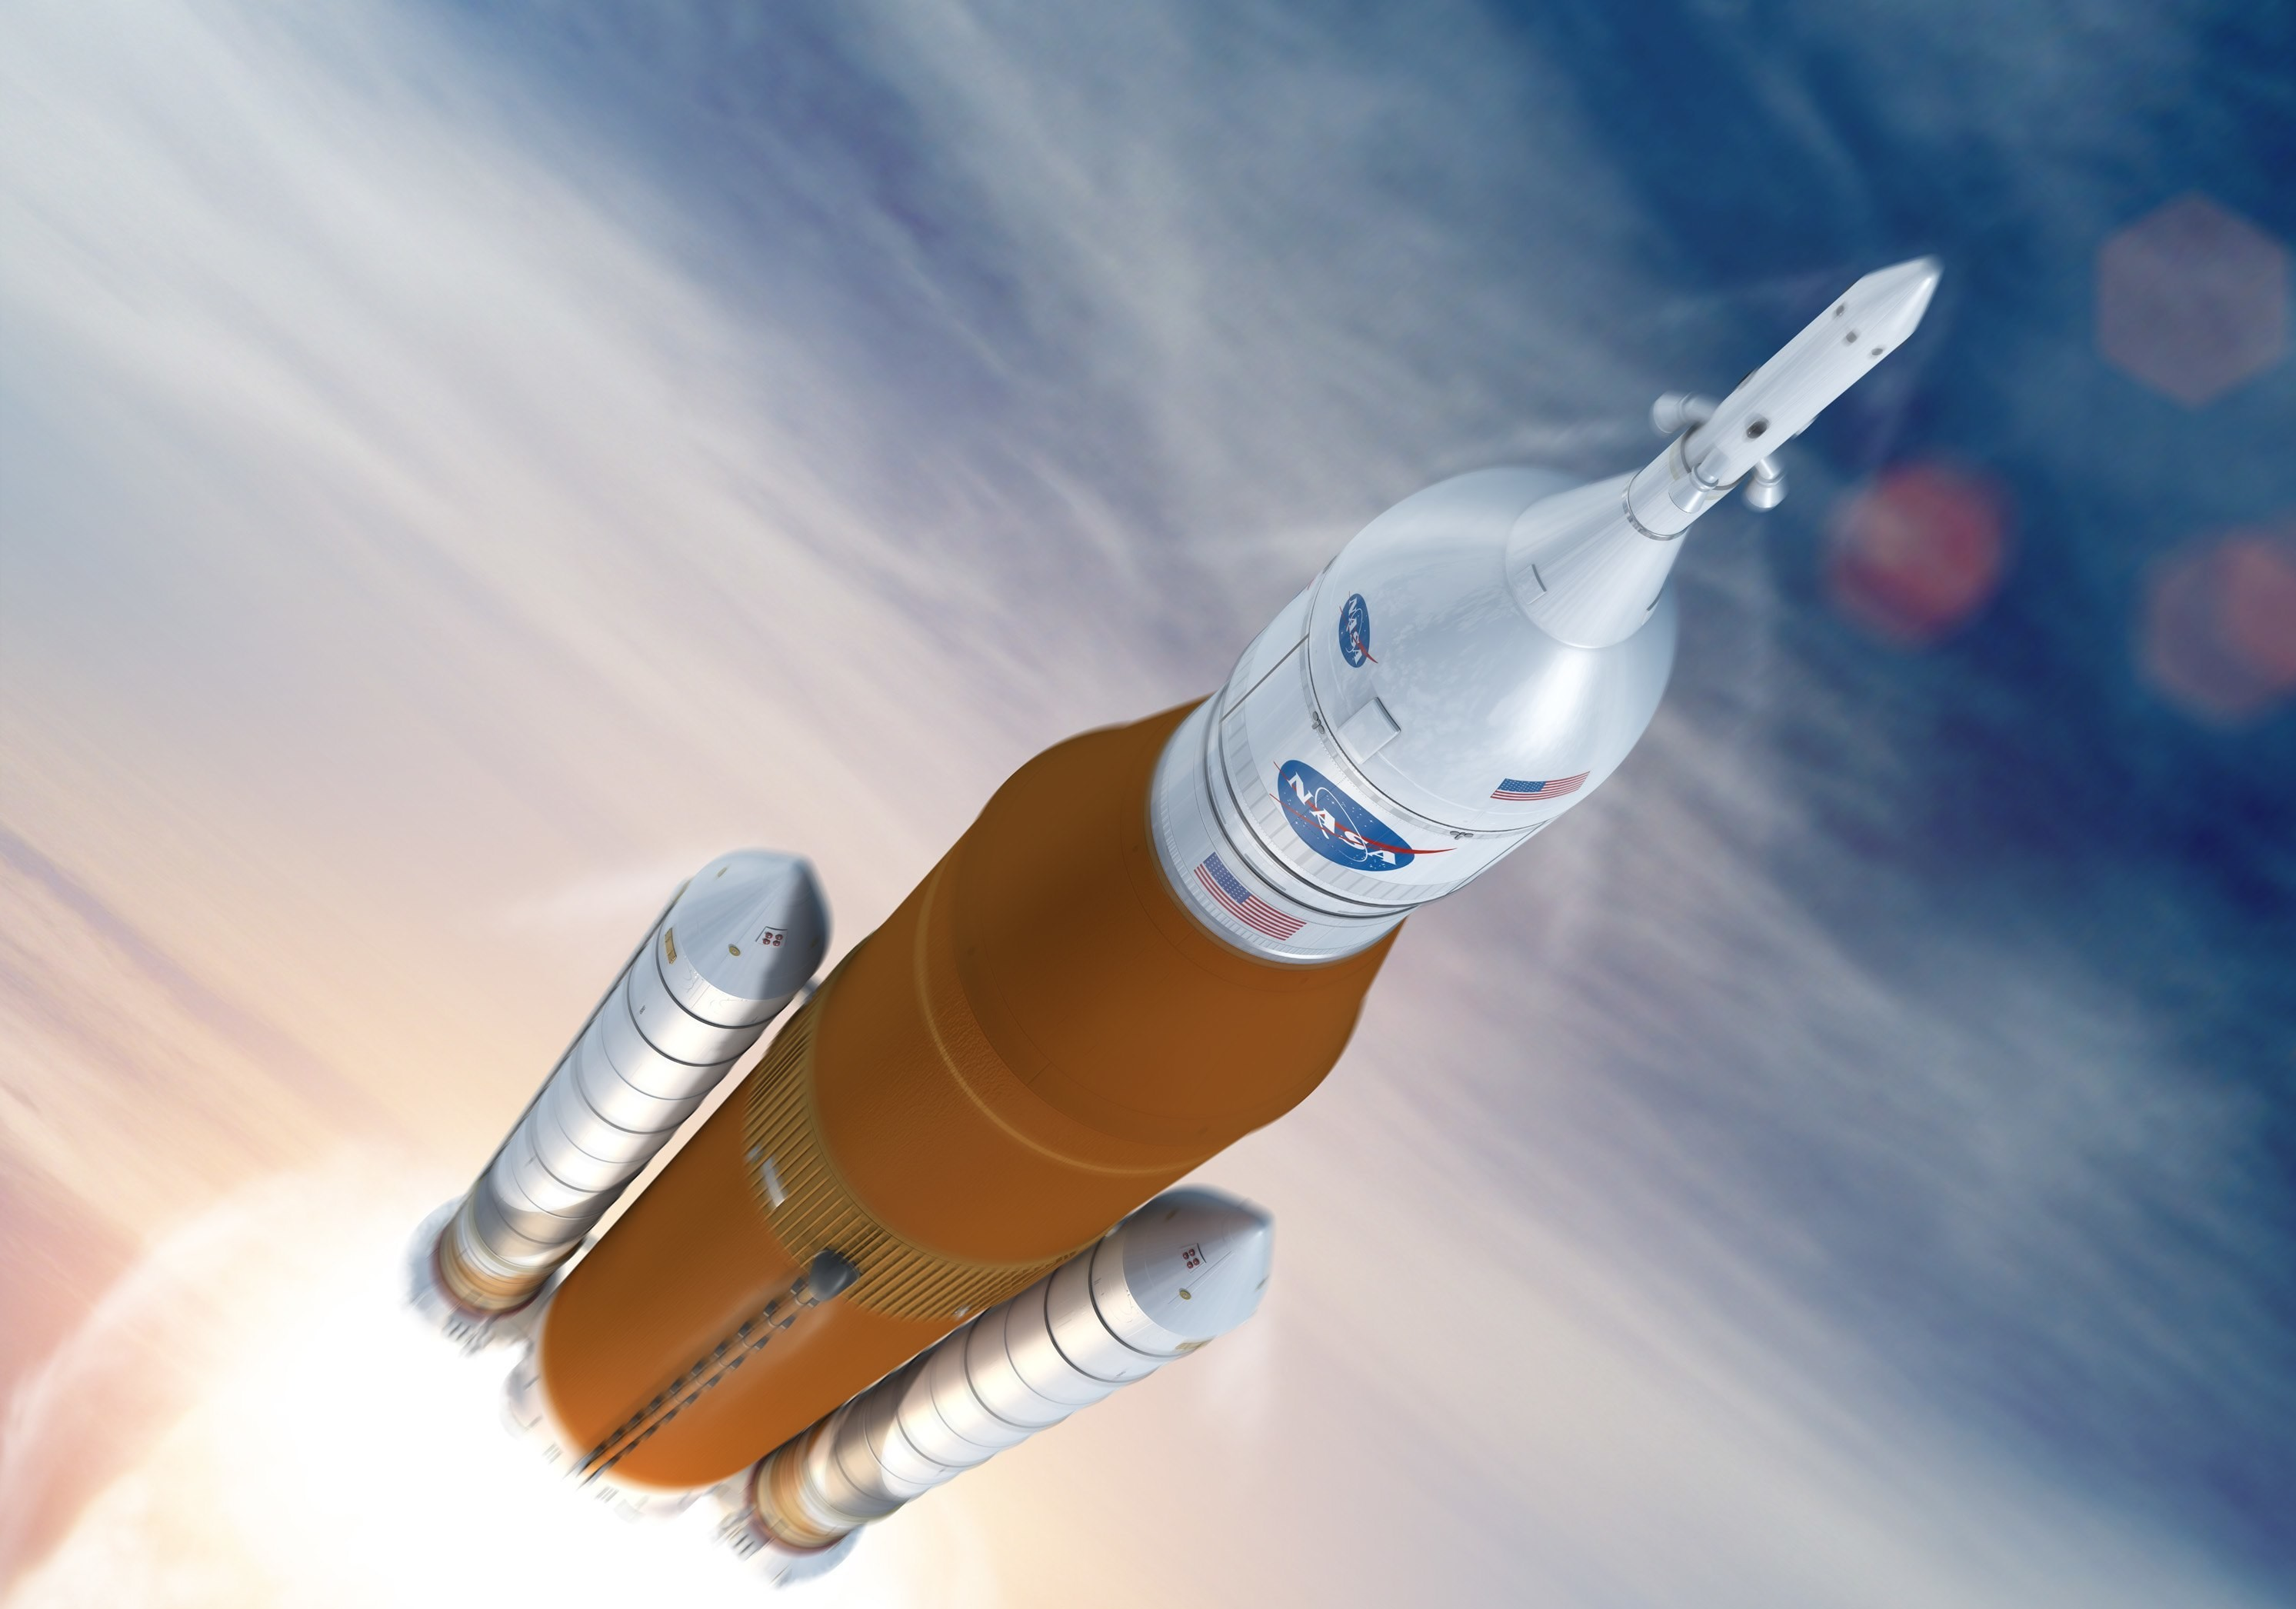 sls new space shuttle - photo #25